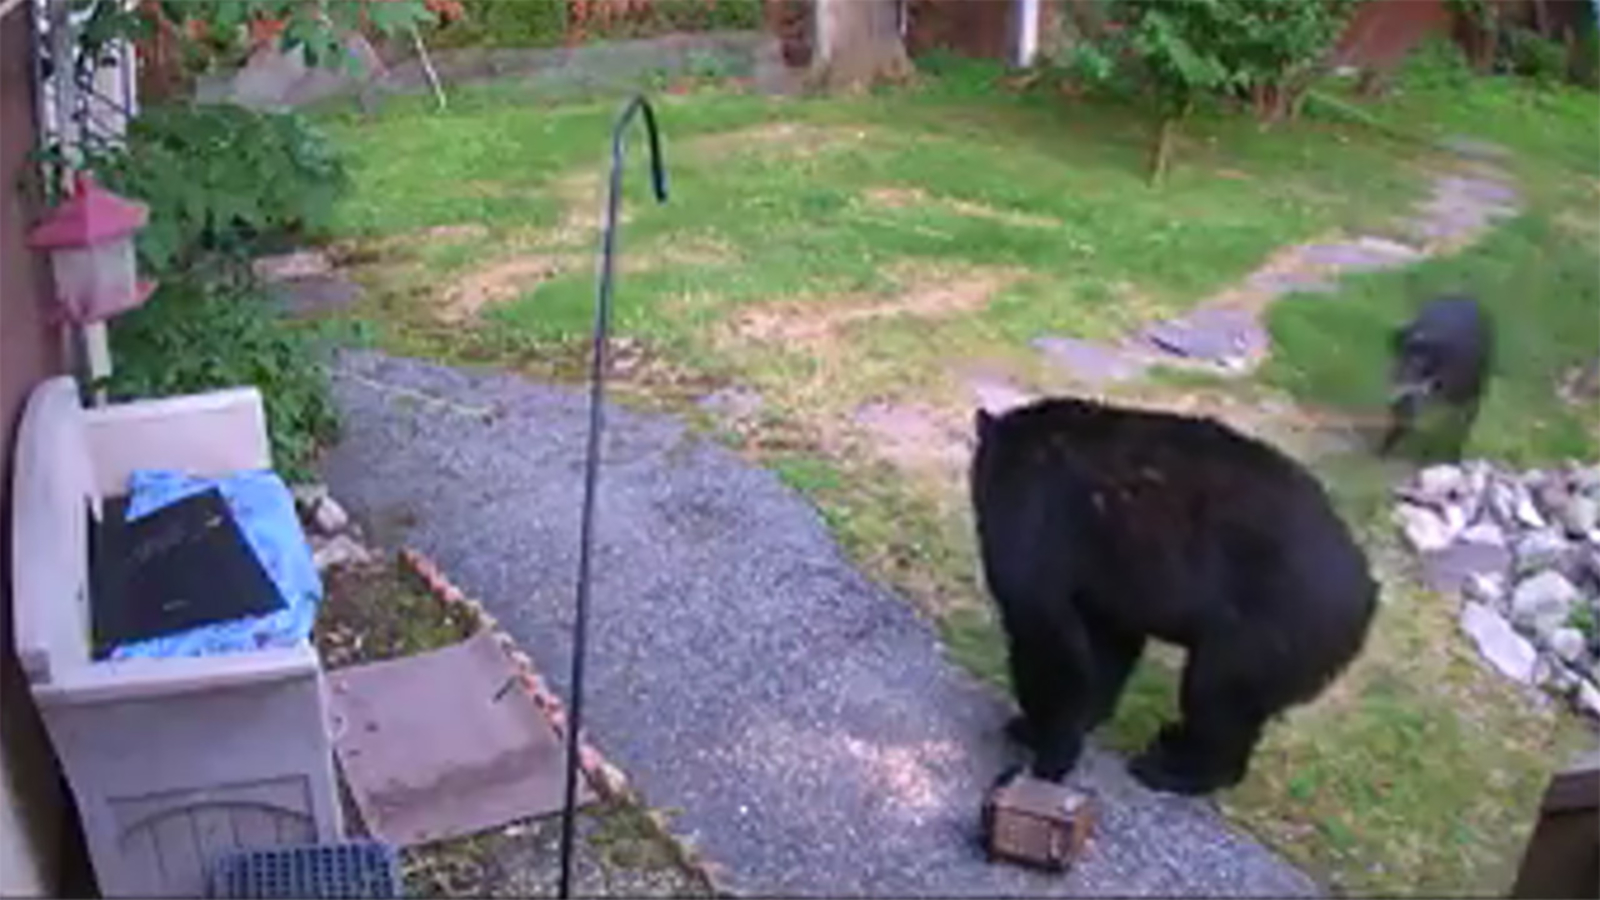 Video shows dog scaring off backyard bear in Hewitt - 6abc ...